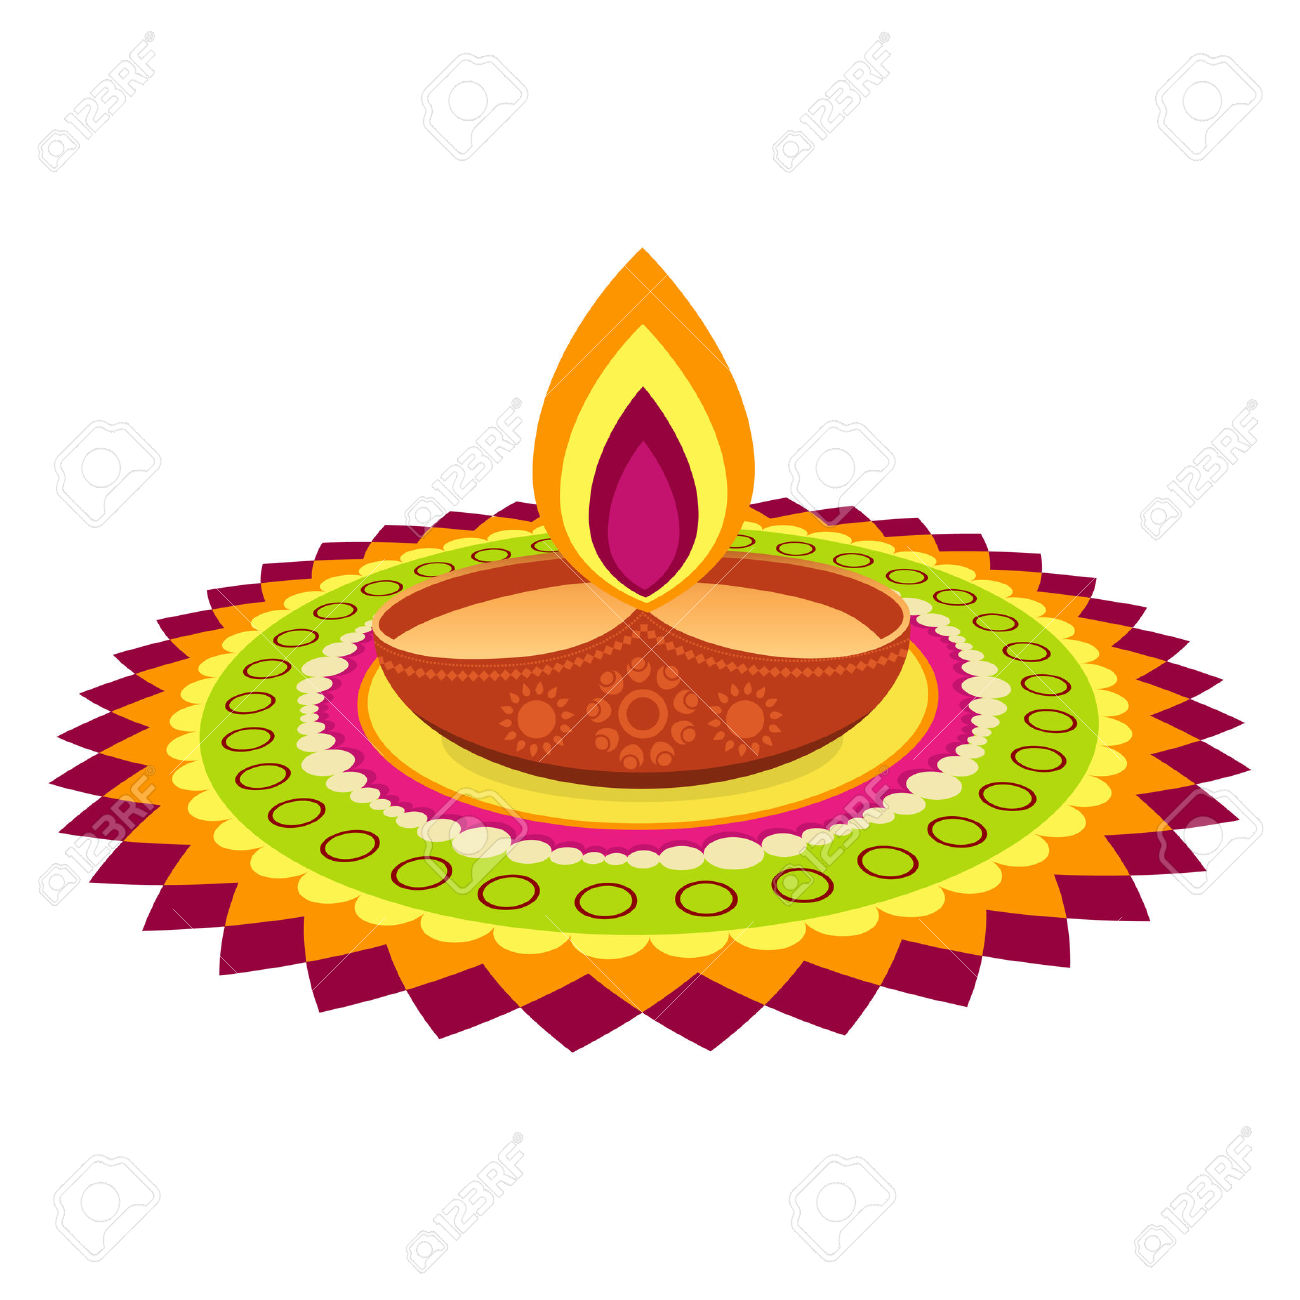 Diwali Clipart Free Download Best Diwali Clipart On